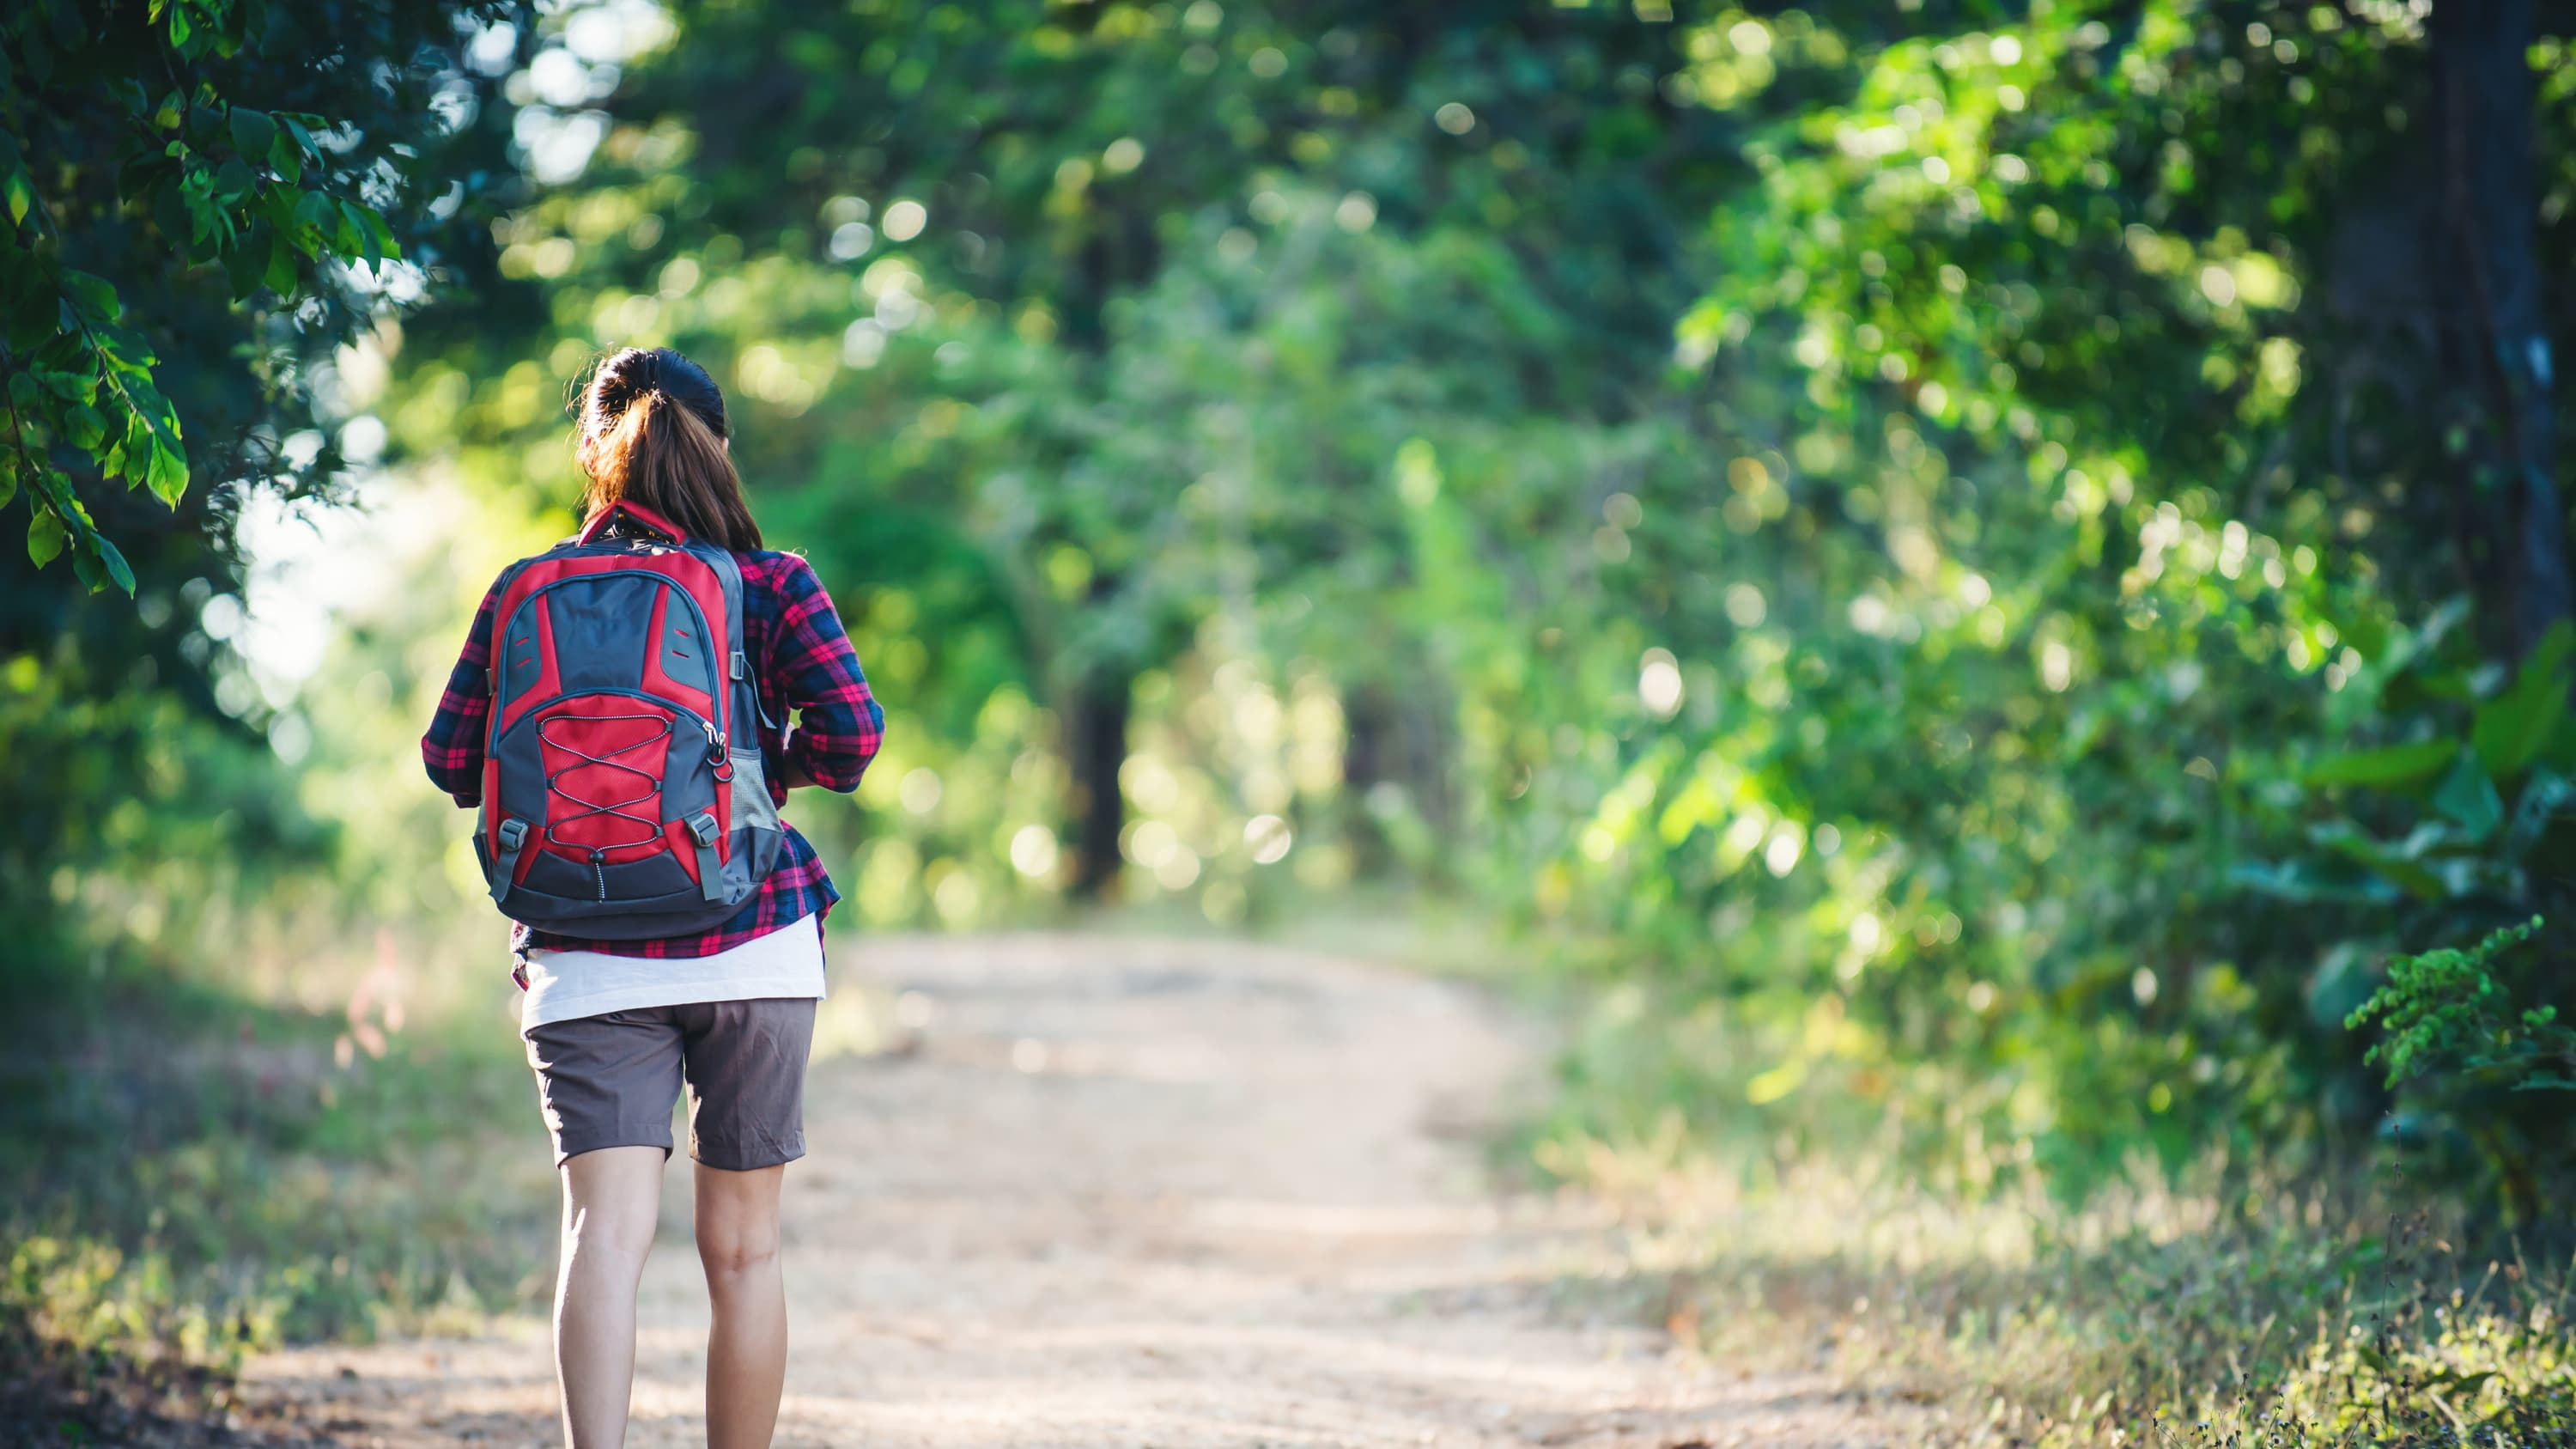 A woman with a backpack on hiking through the woods. She possibly recovered from sacroiliac joint fusion.